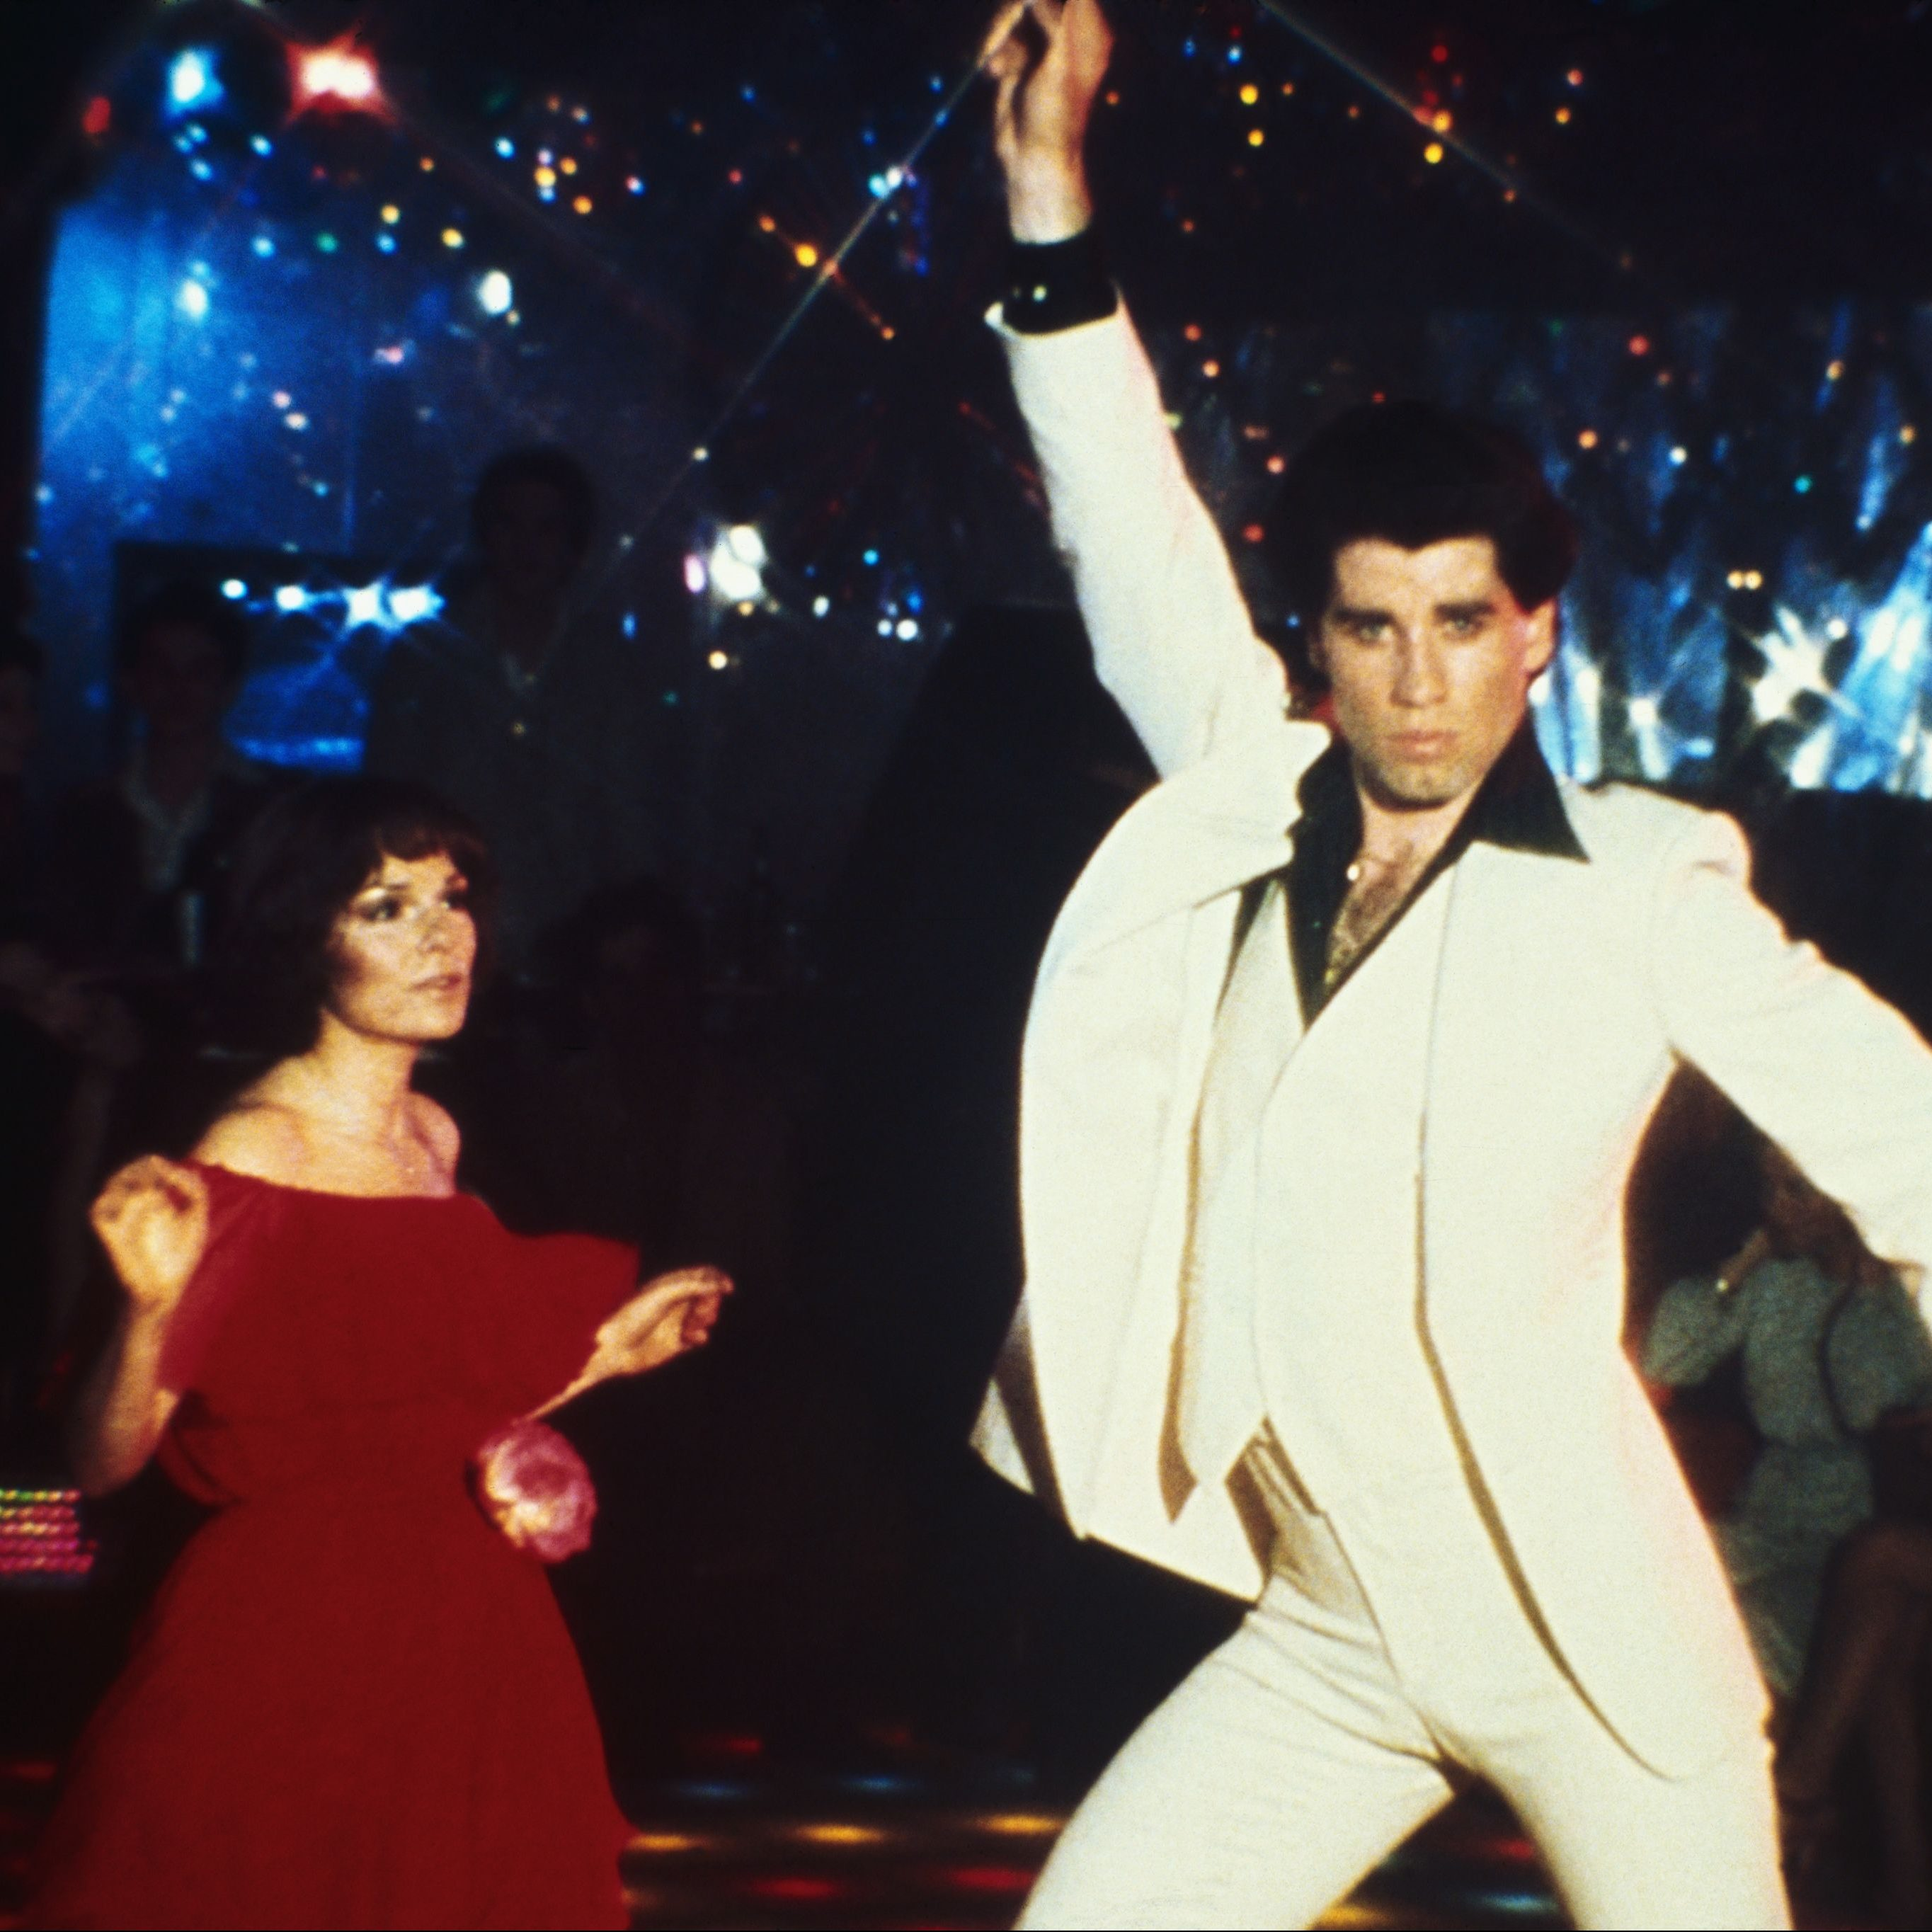 saturday night fever 1529082800 e1578919377832 Let's Go Crazy With 20 Facts About Prince's Movie Purple Rain